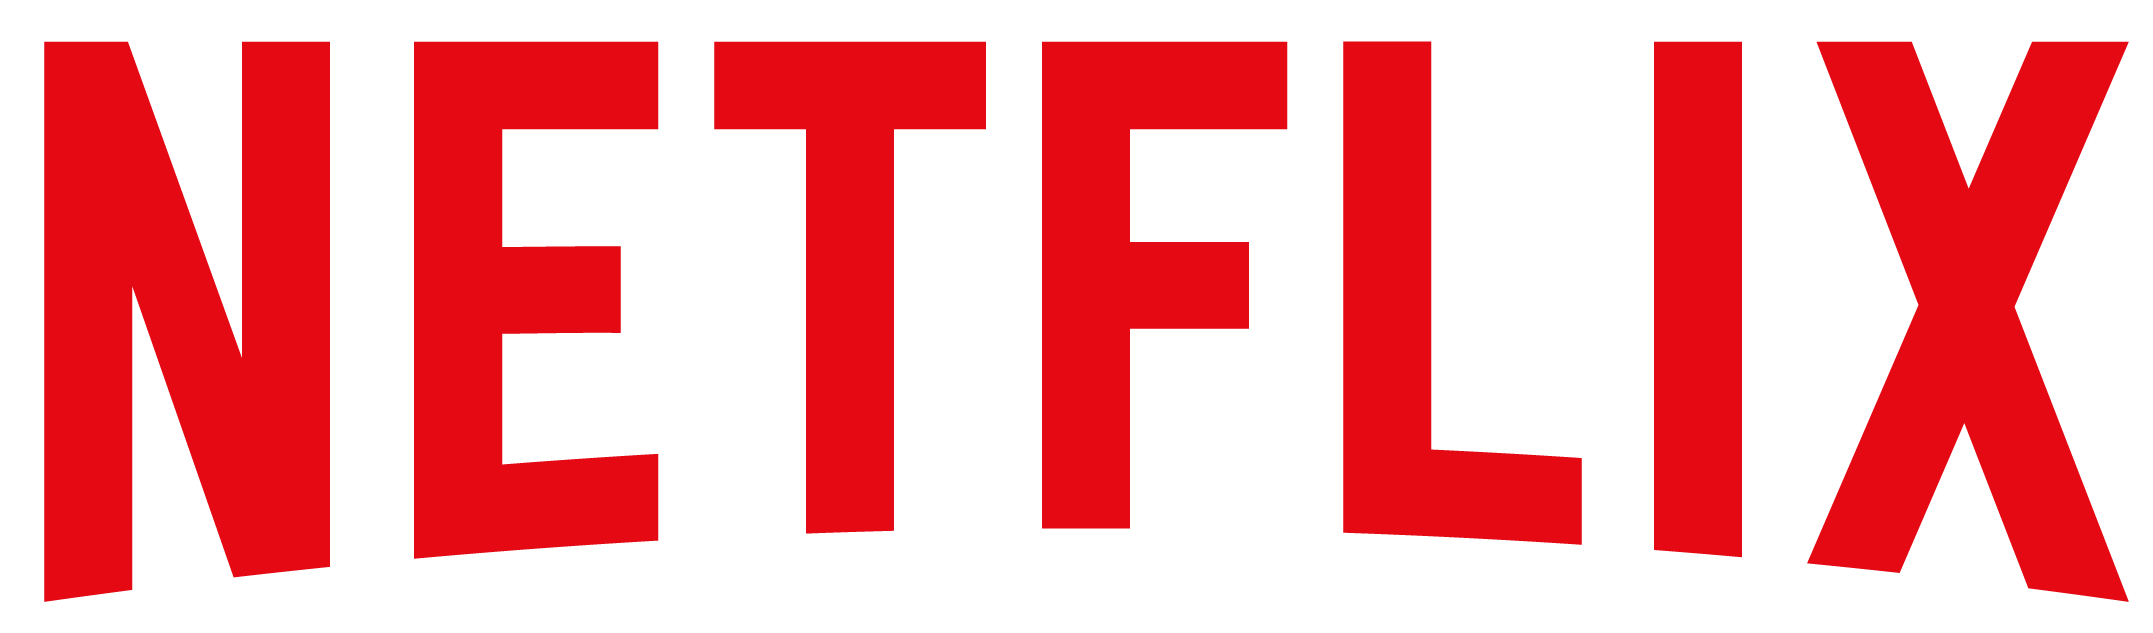 Netflix, Is Nflx A Good Stock To Buy, Ultra High Definition, Lucas Shaw